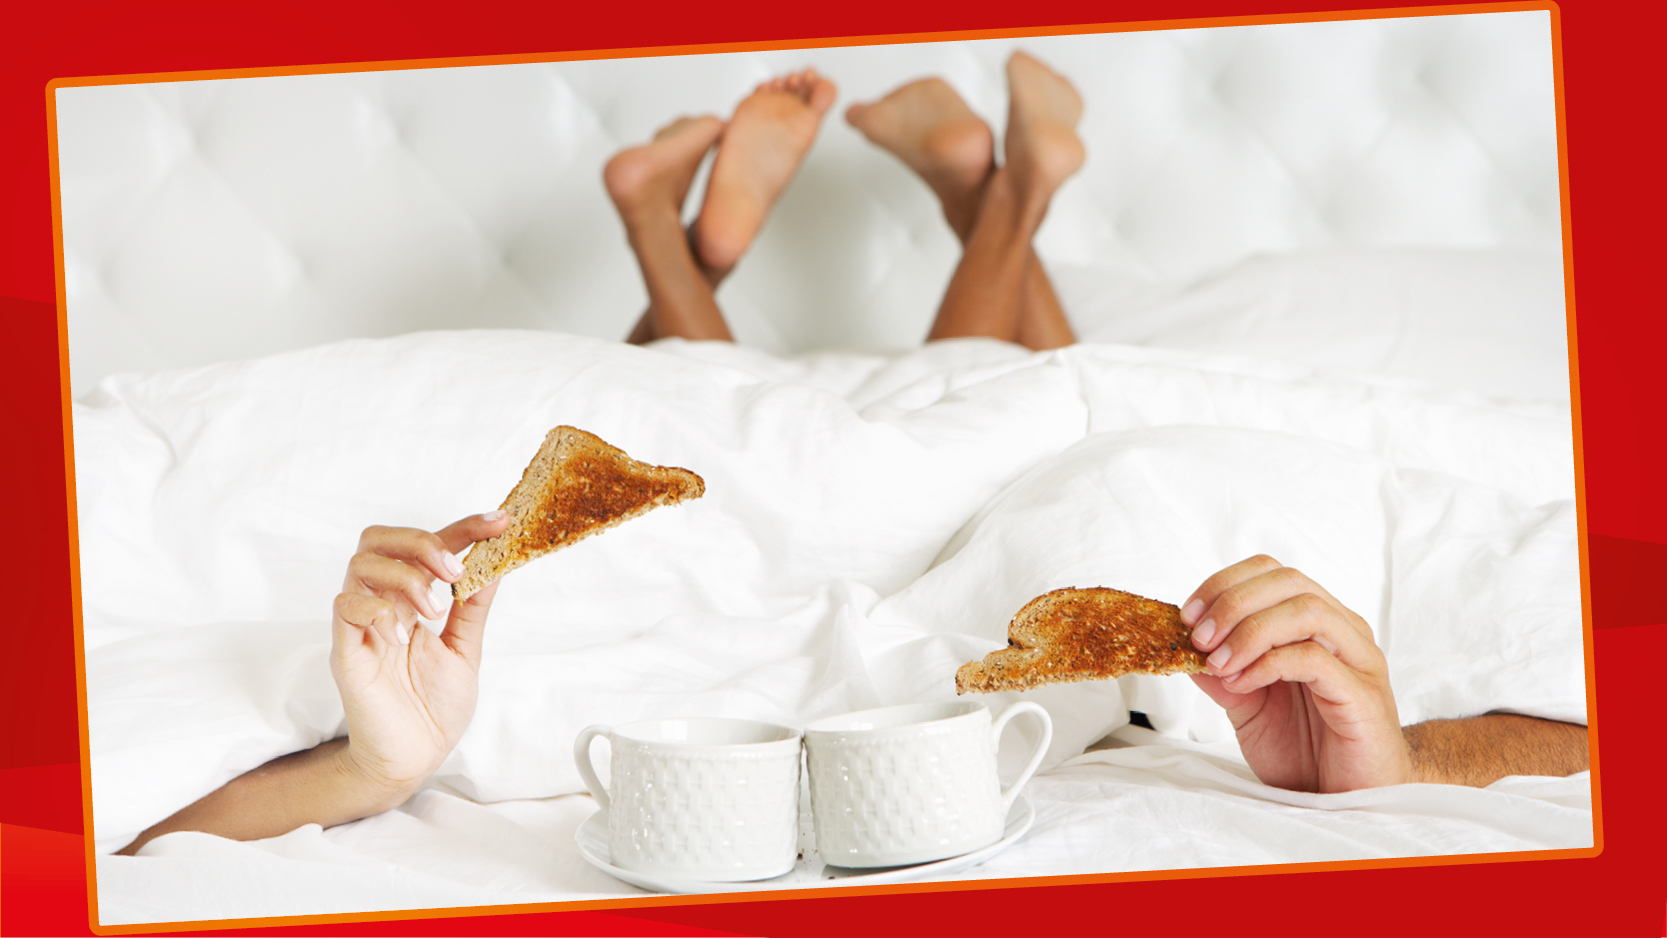 A couple lie under white covers in bed, hands holding toast triangles poking out at the bottom.